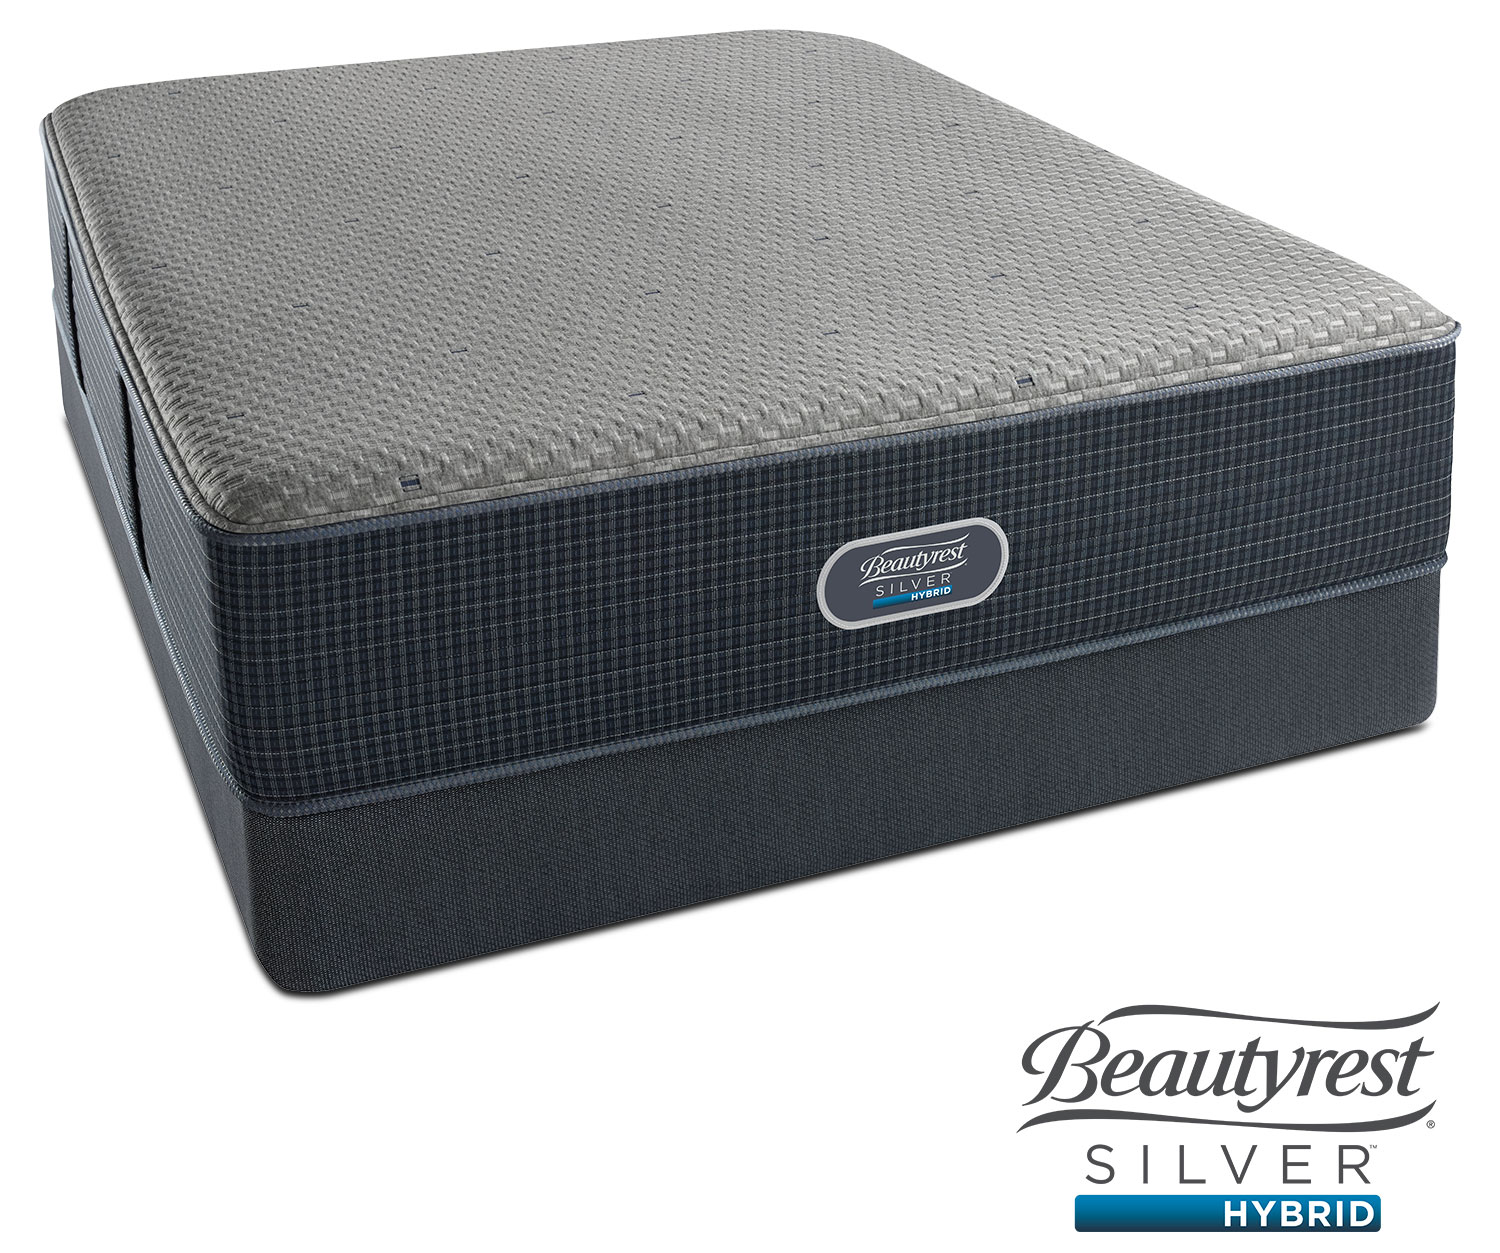 Mattresses and Bedding - Belle Island Ultra Plush Full Mattress and Foundation Set